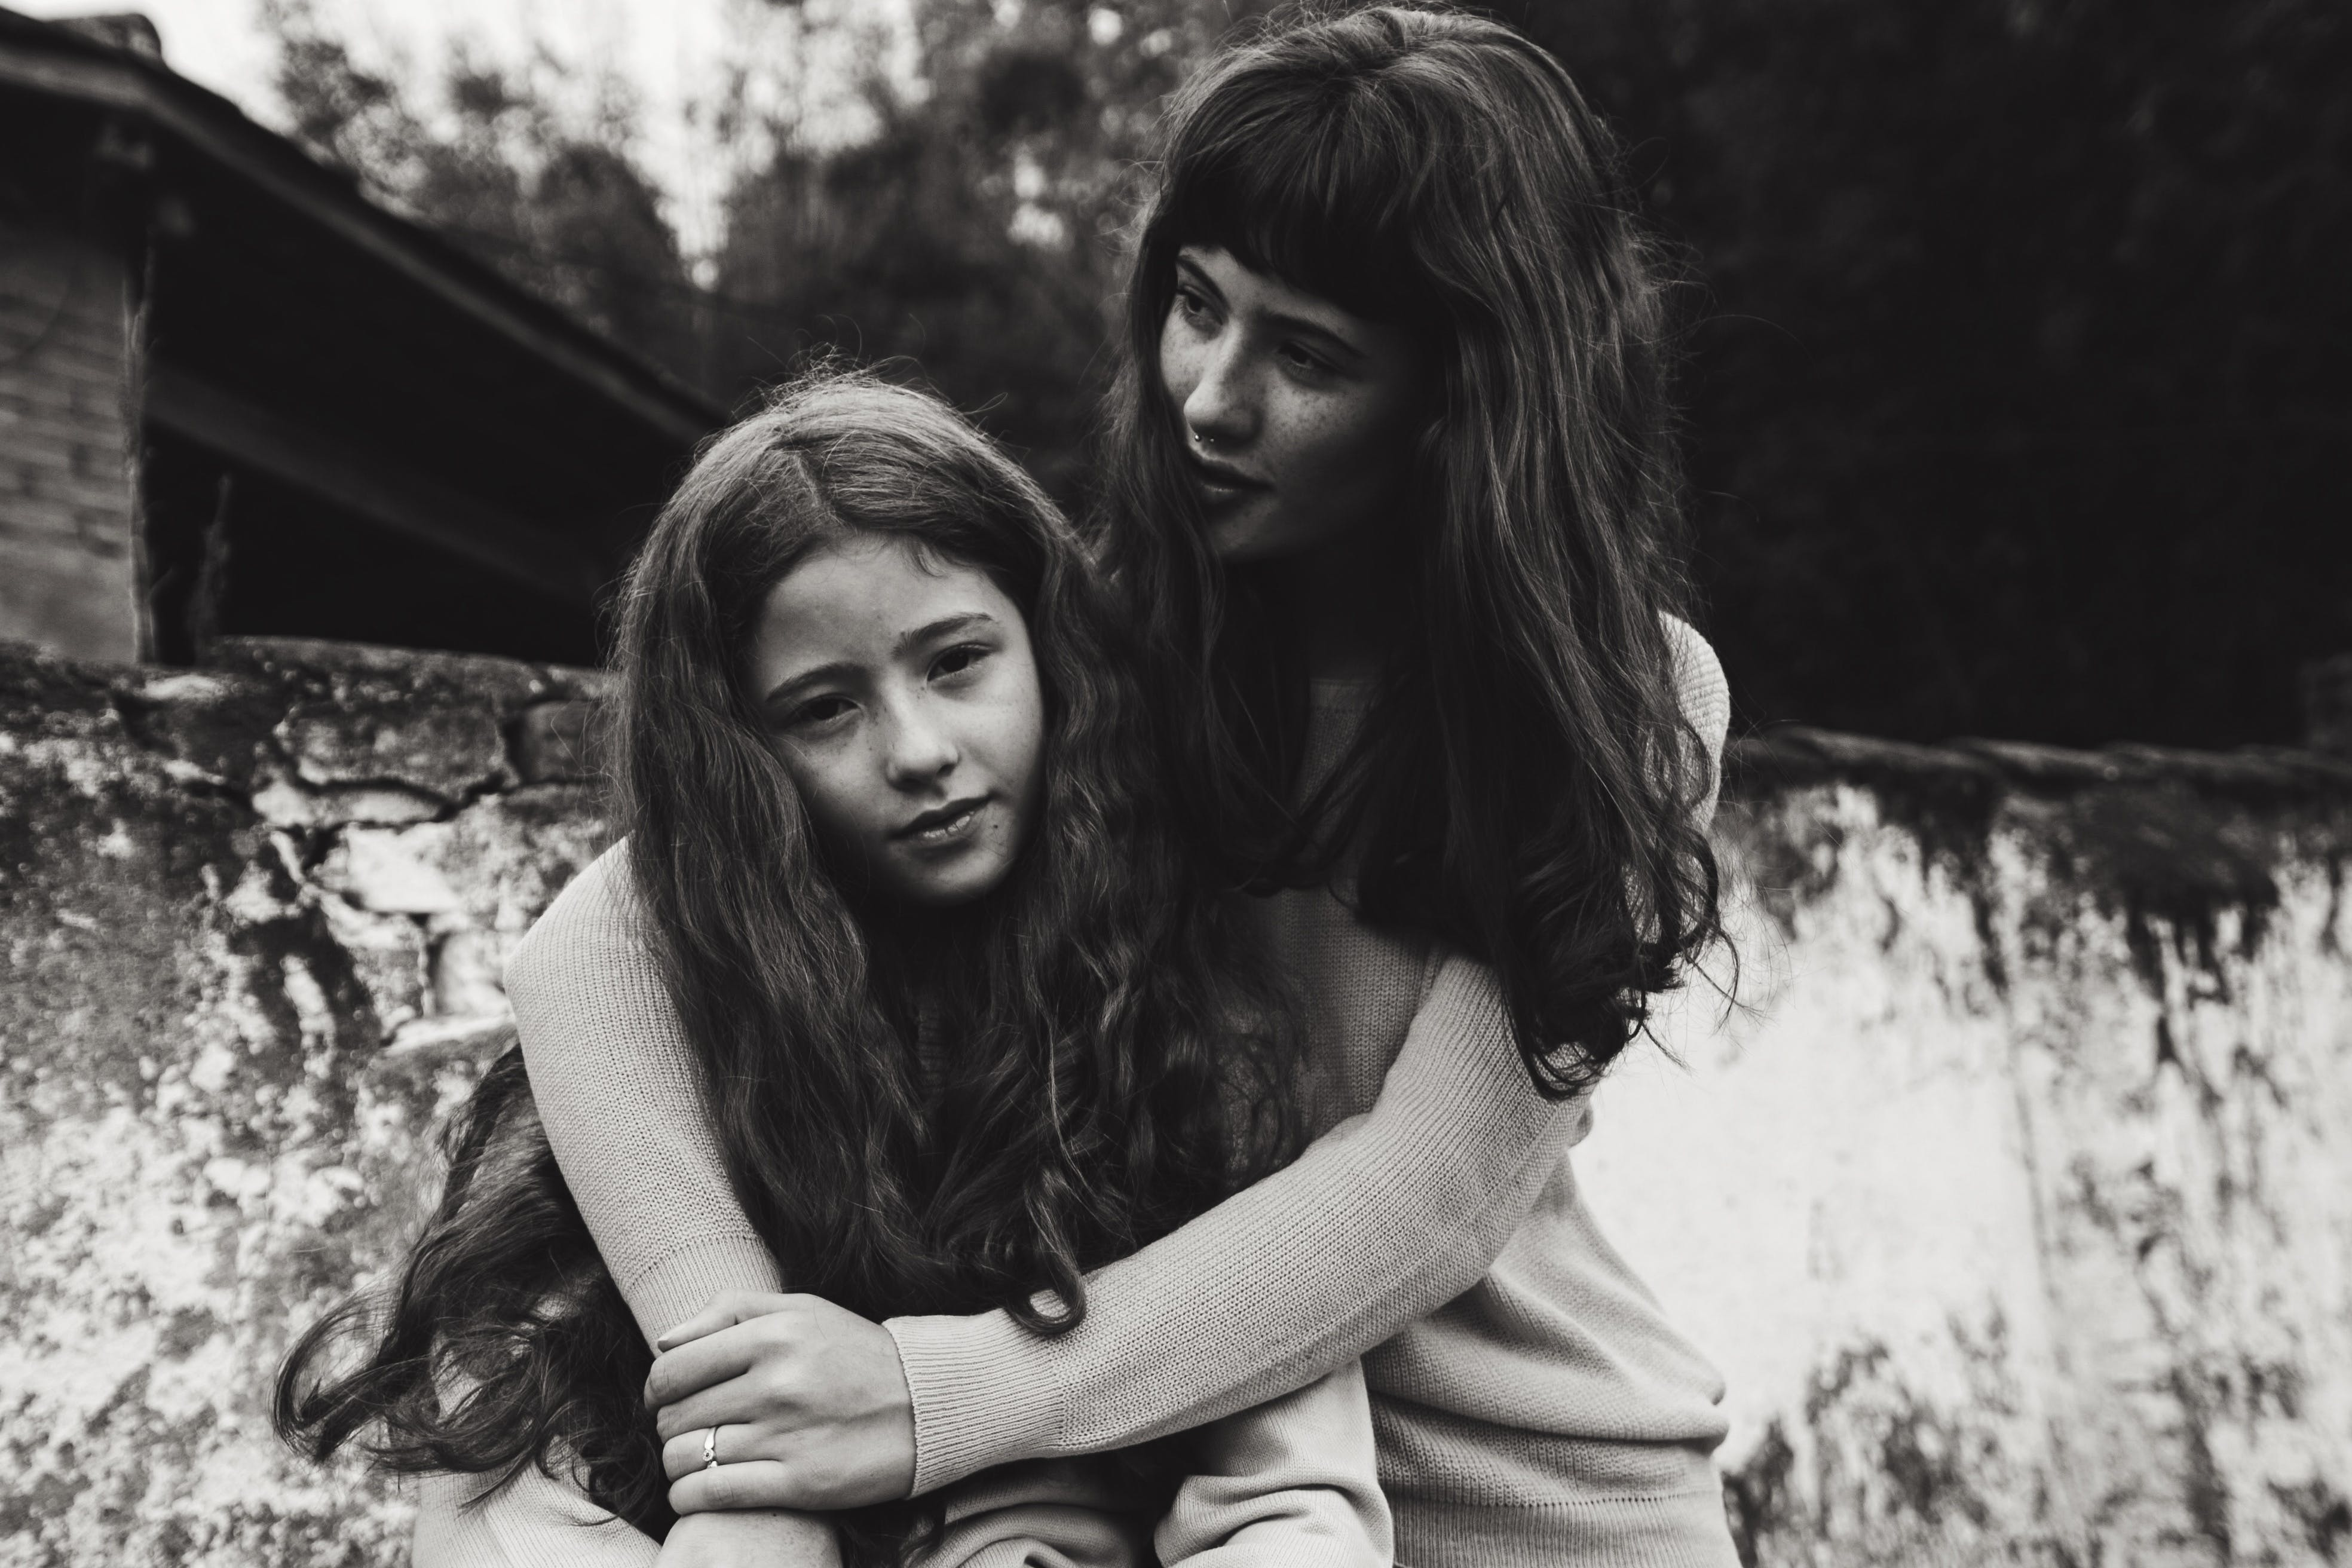 Grayscale Photo of Woman and Girl With Long Hair